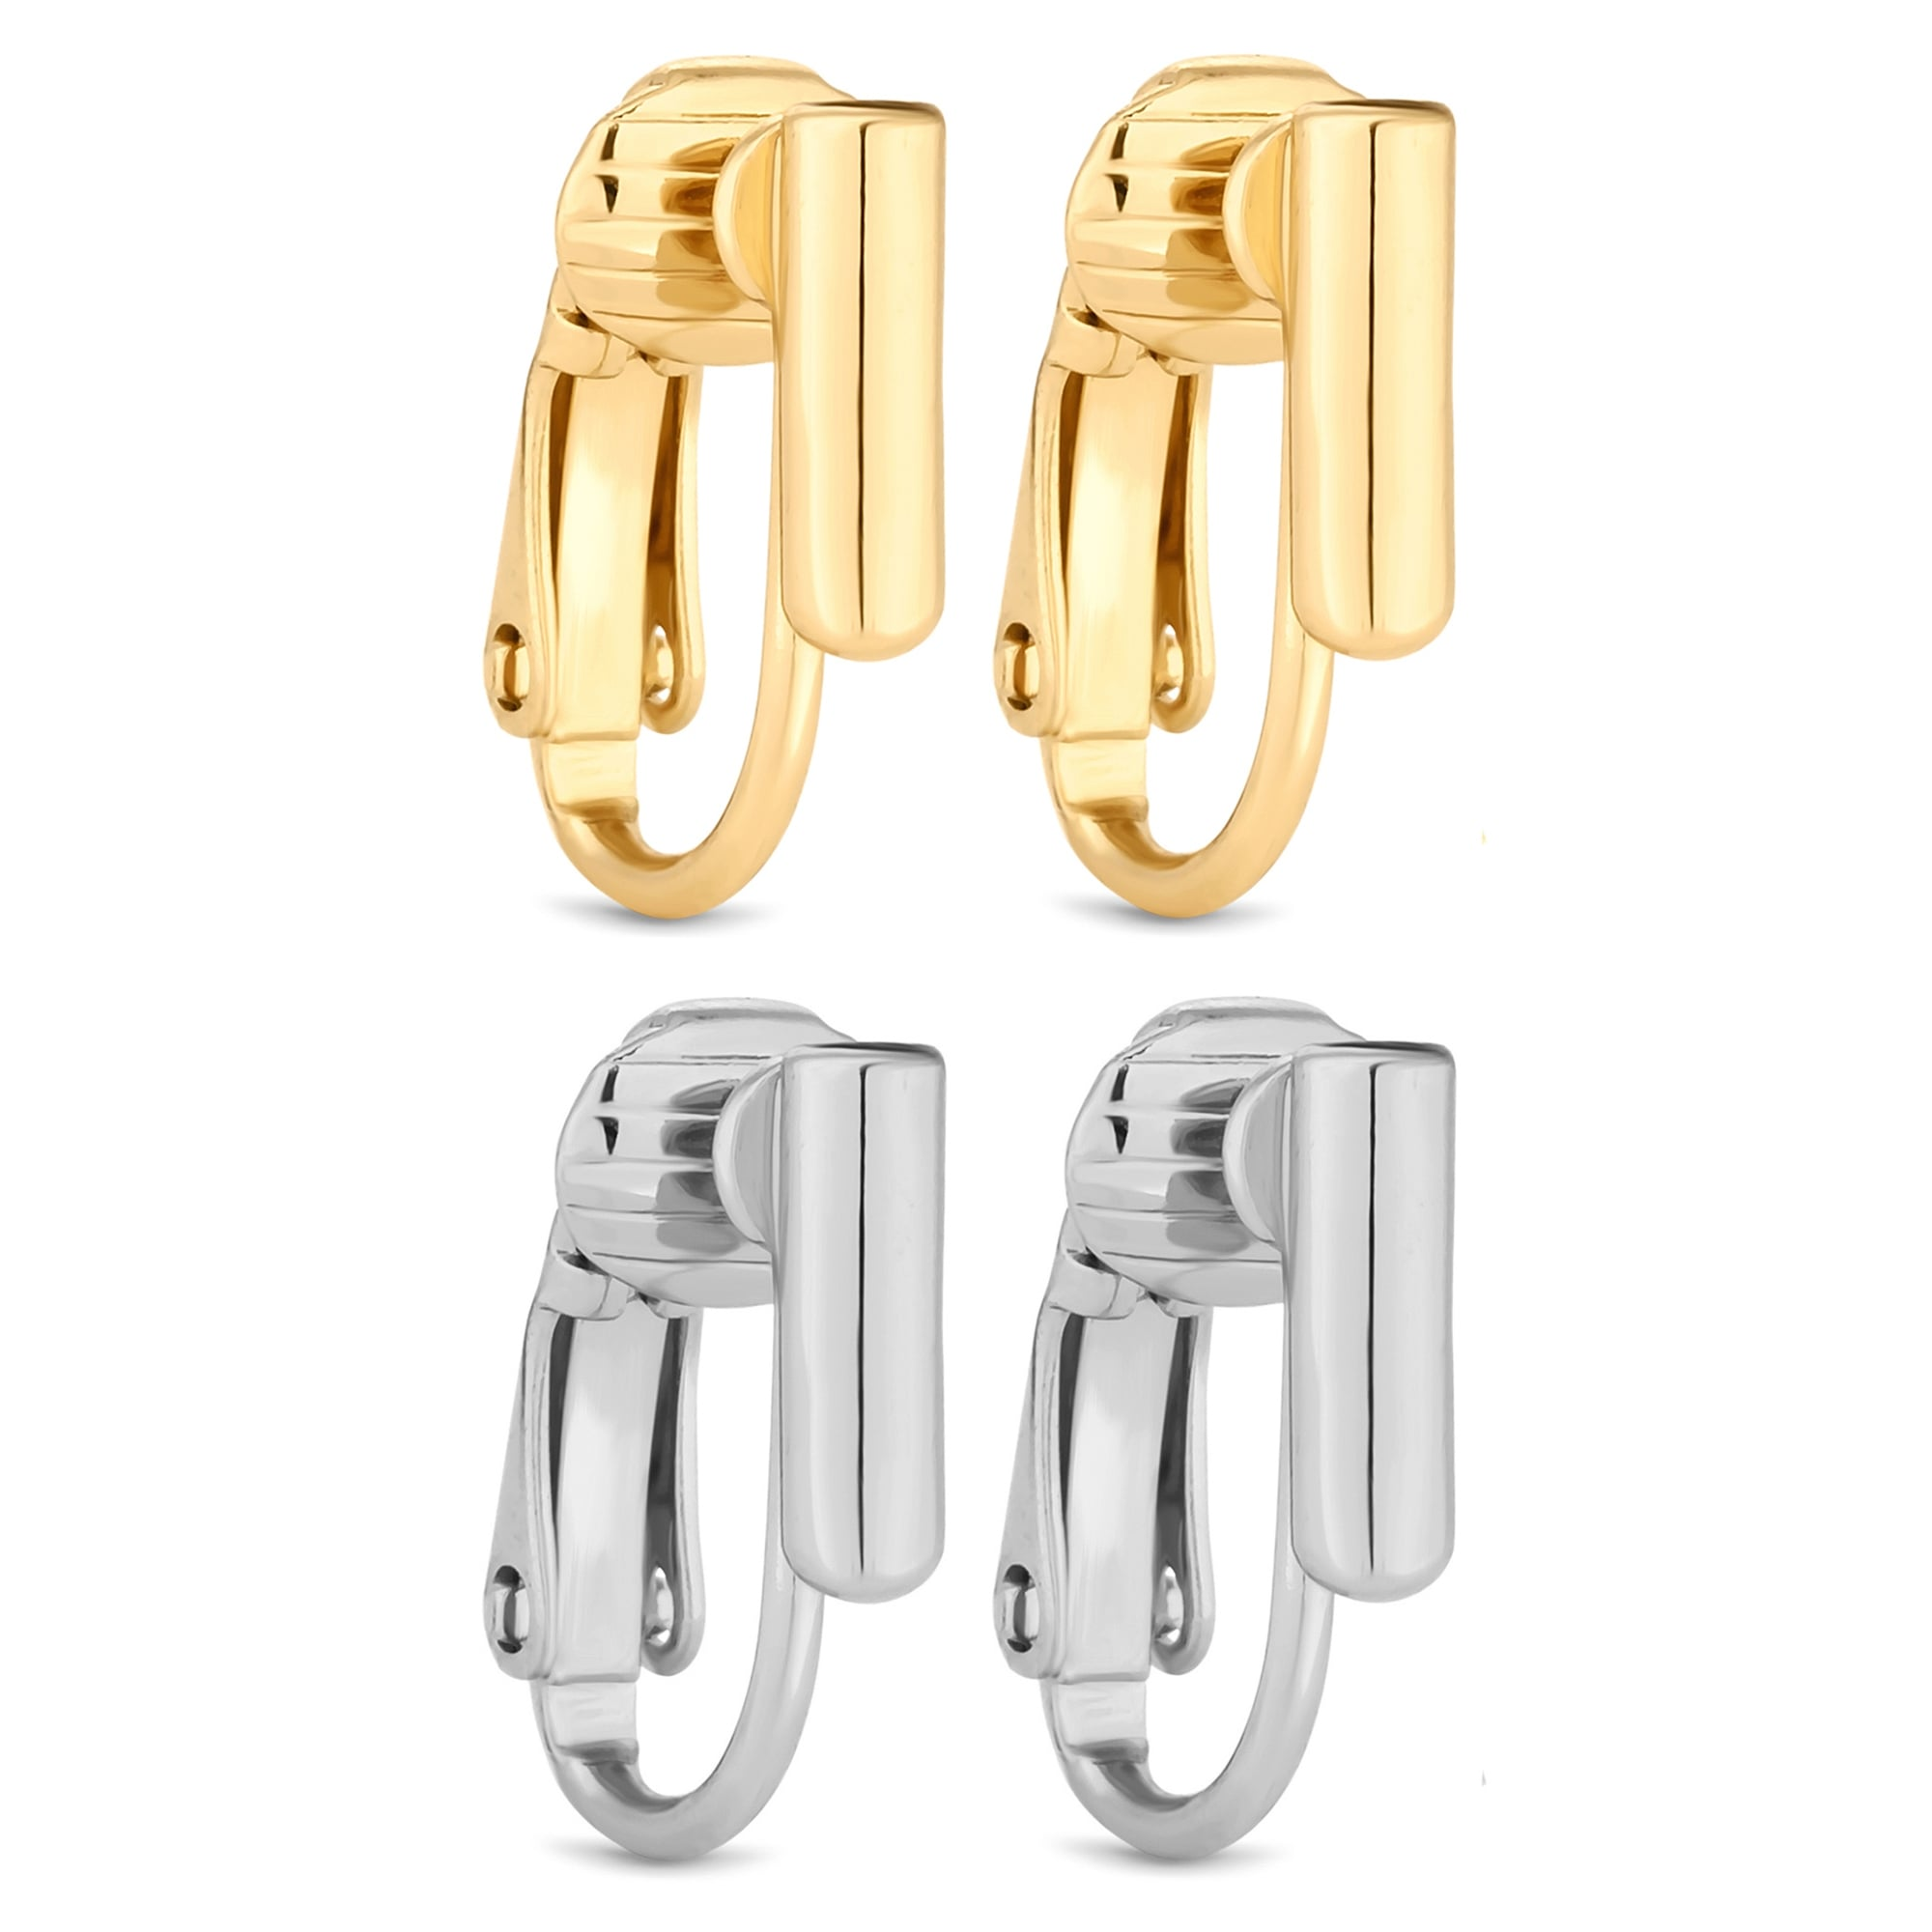 d2d4feabe Jon Richard Gold Silver Plated Pierced Earring Converters Pack Of. Earring  converters 2 pairs luc co ...